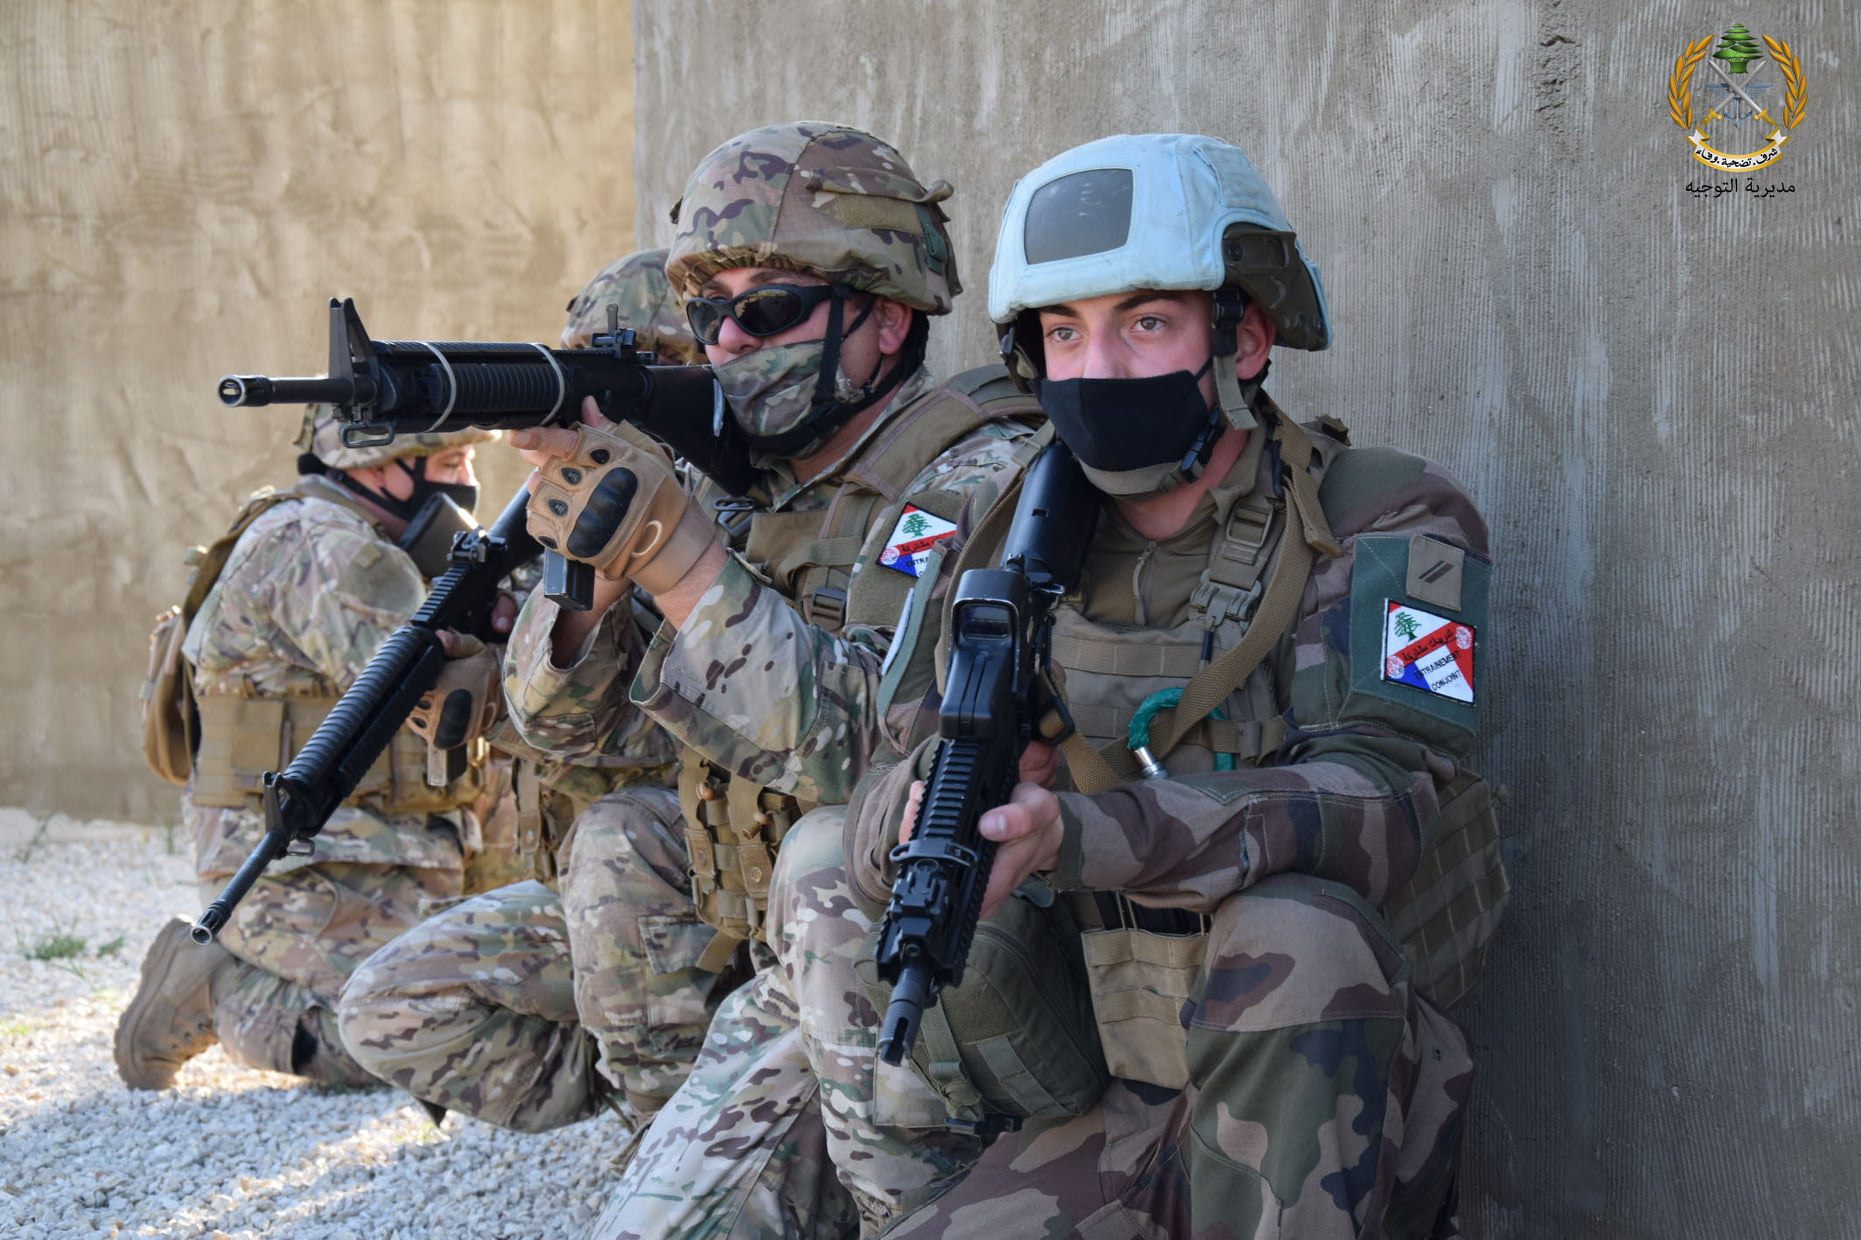 Lebanese and French troops underwent urban combat training.